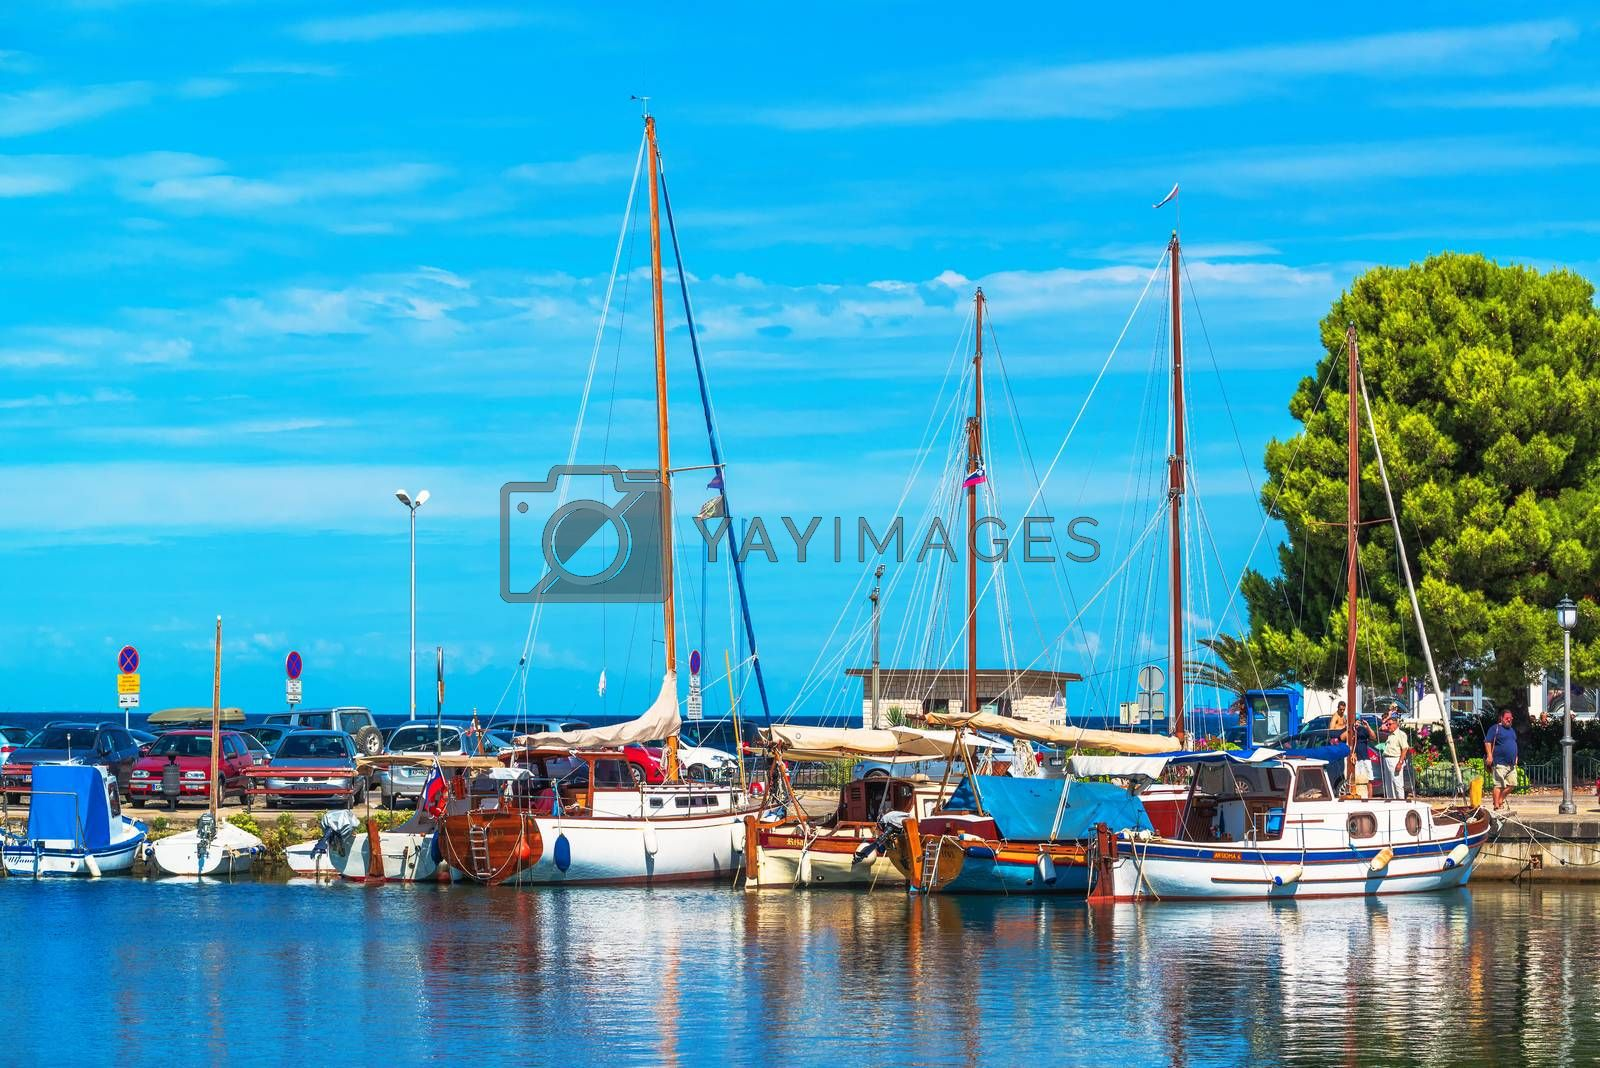 ISOLA, SLOVENIA - AUGUST 30, 2016: Boats in the Isola marina on bright summer day